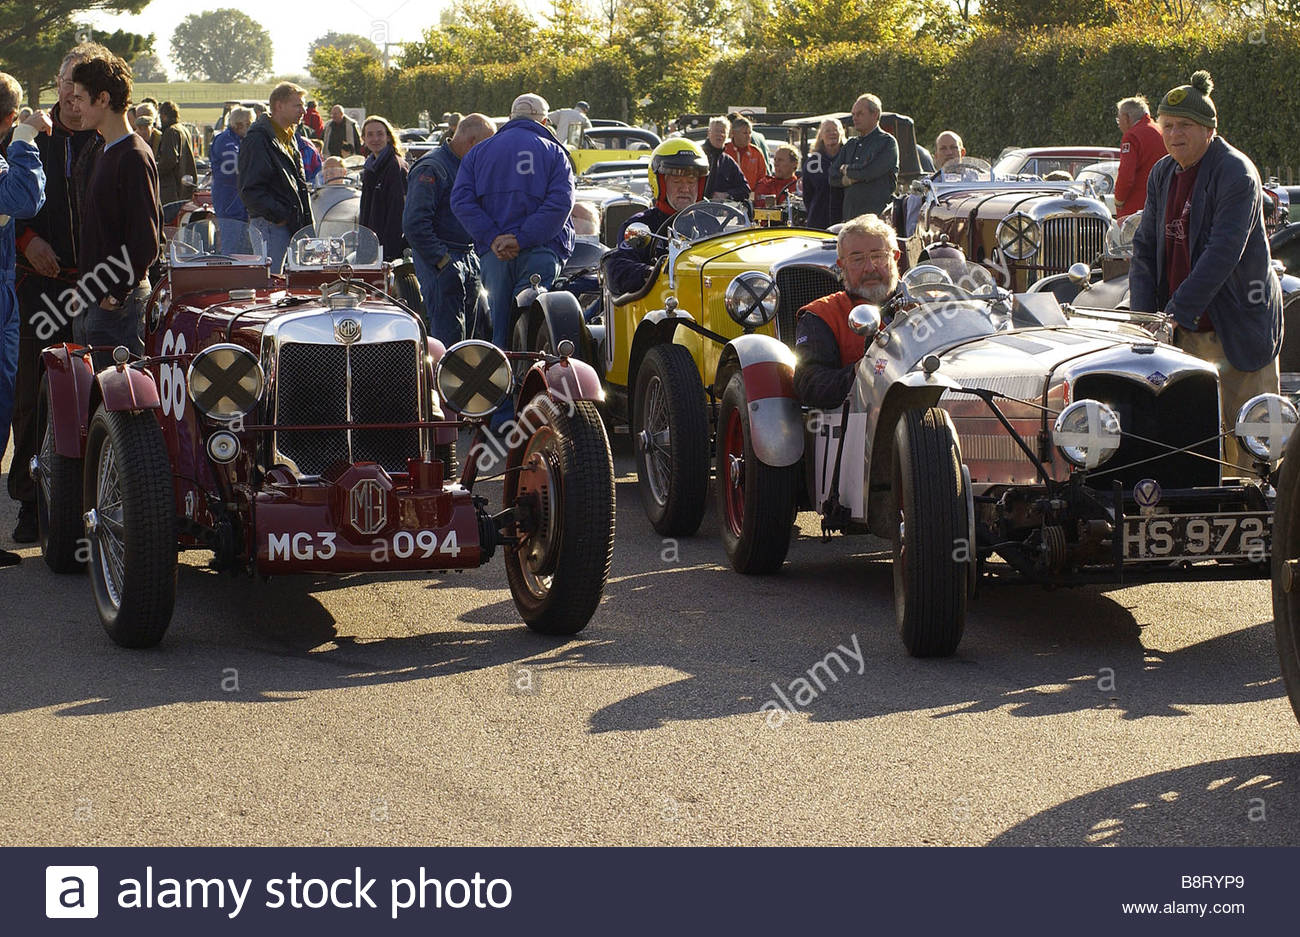 Vintage Sports Cars on a Summers Day in England - Stock Image